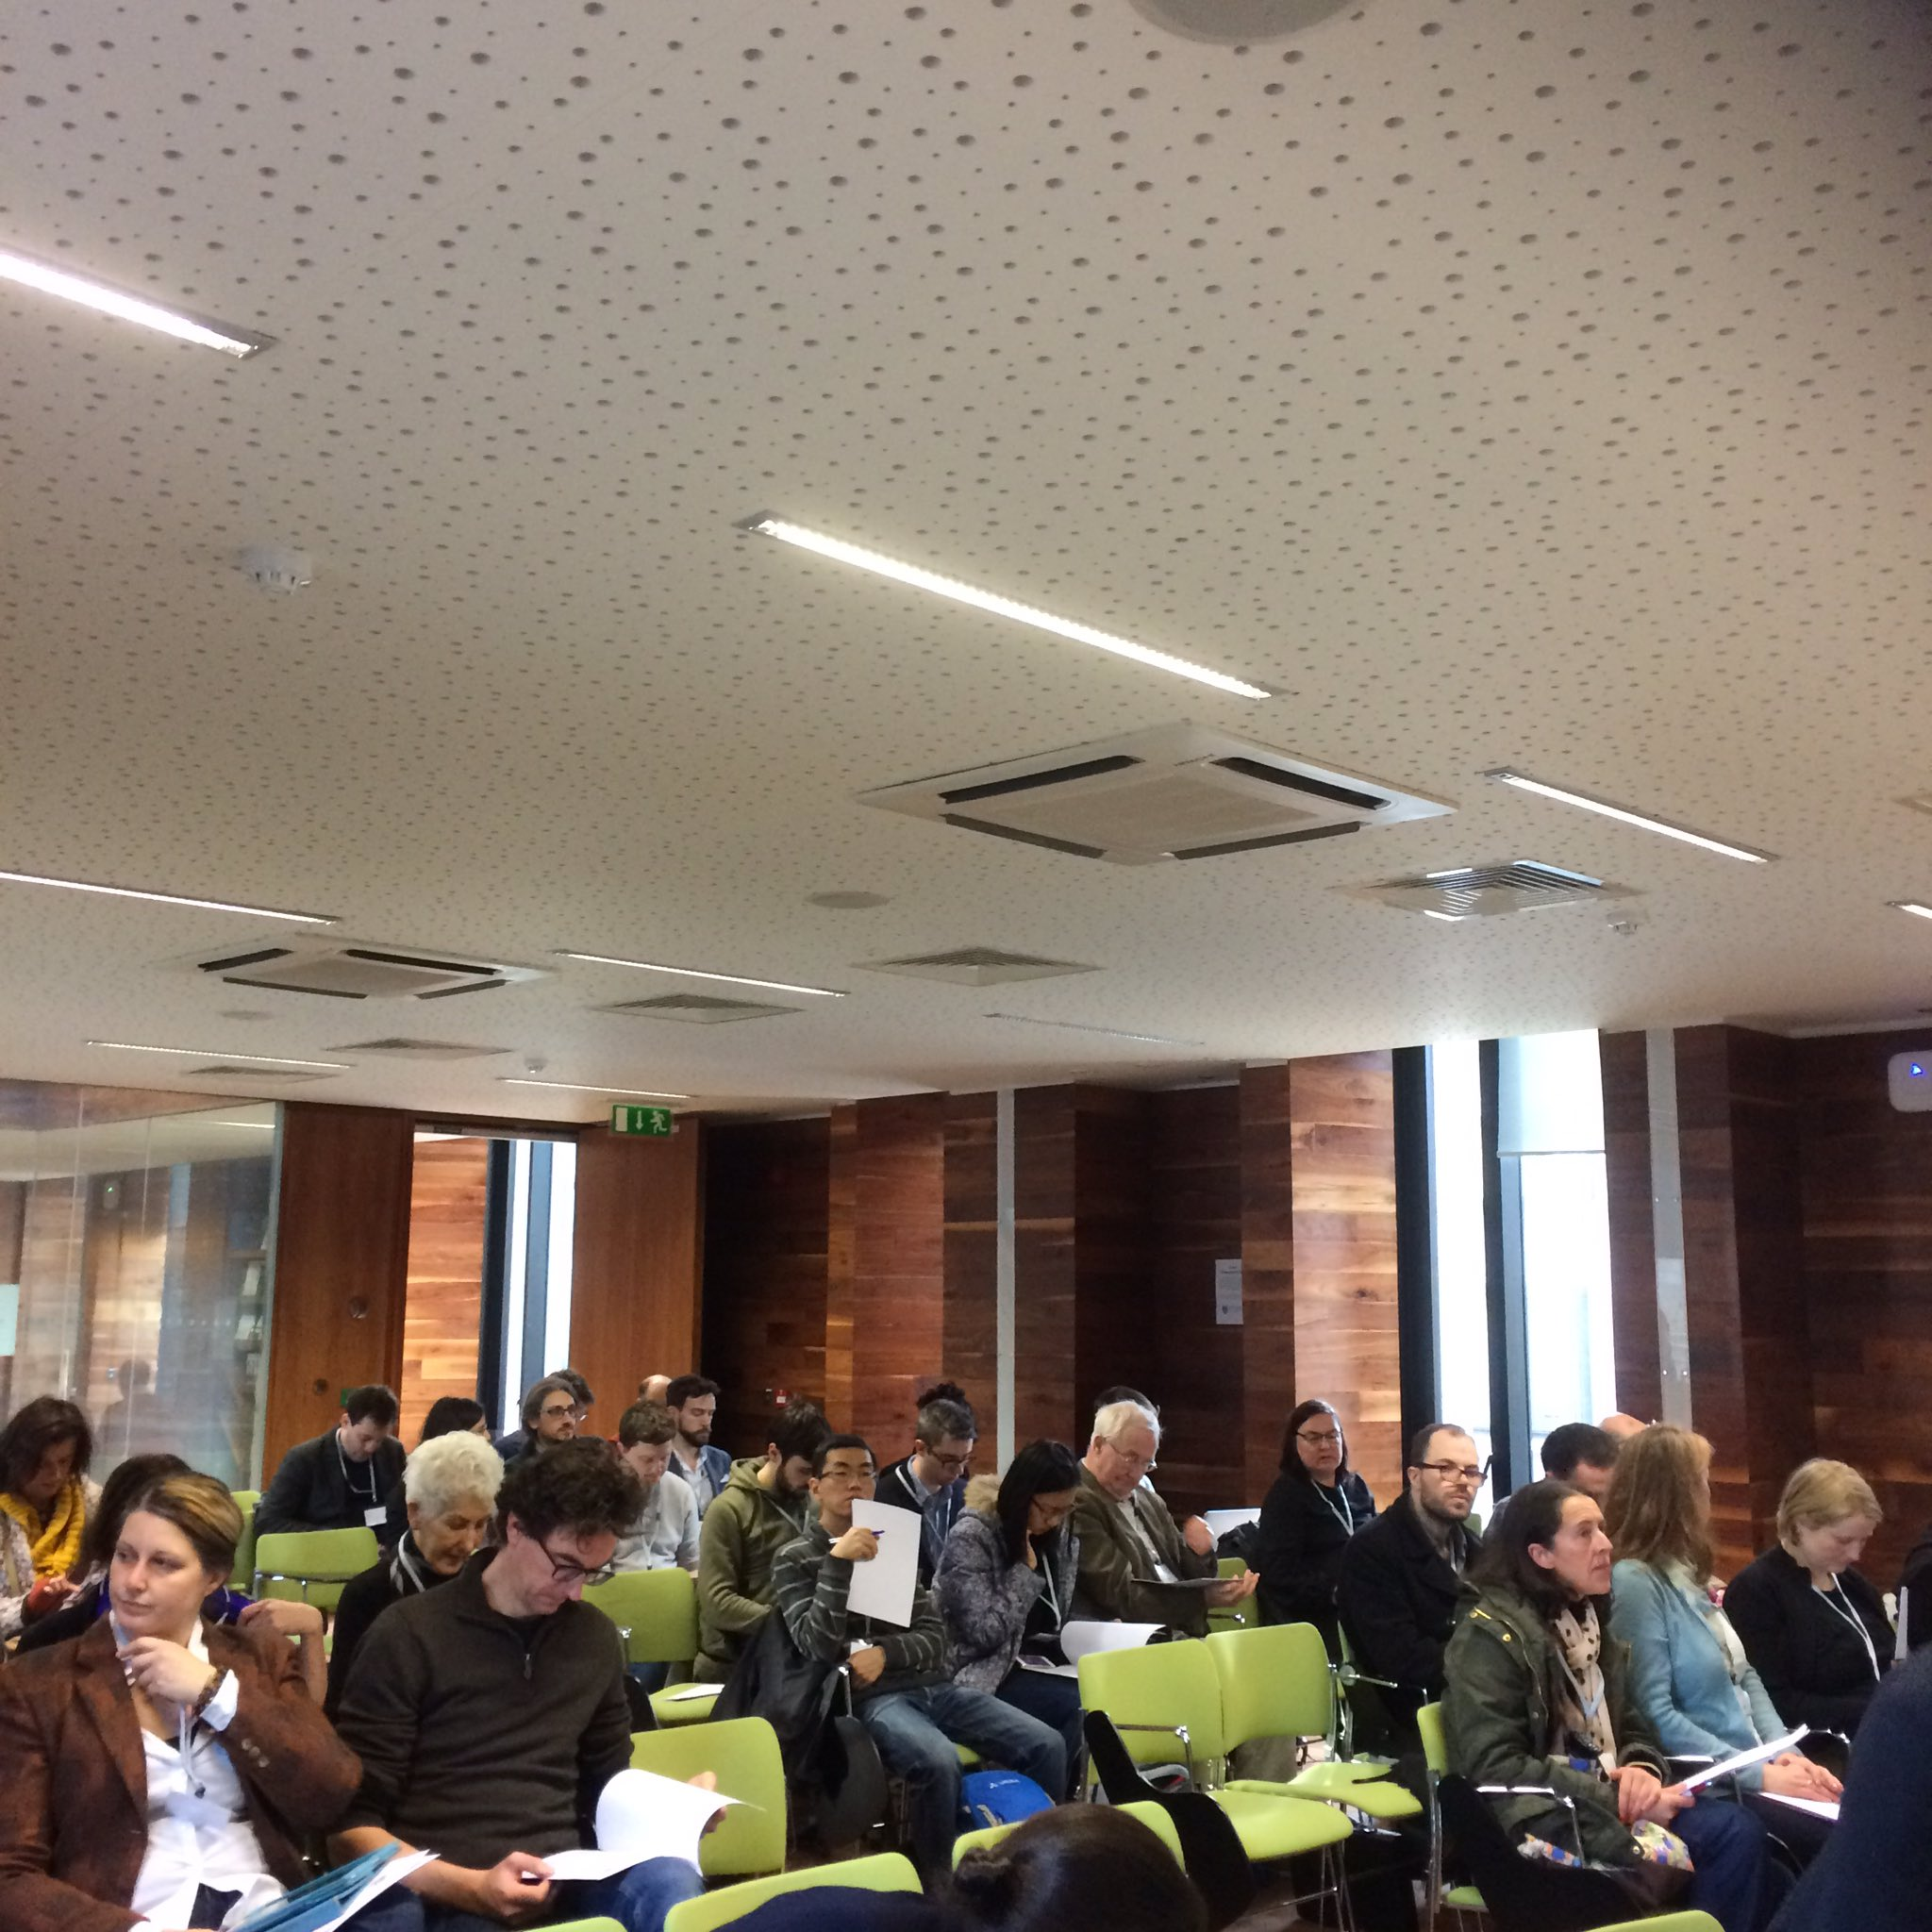 Almost full house this morning in @TLRHub for DAH Digital Conference! #dahphdie https://t.co/nMkJhi8ywu